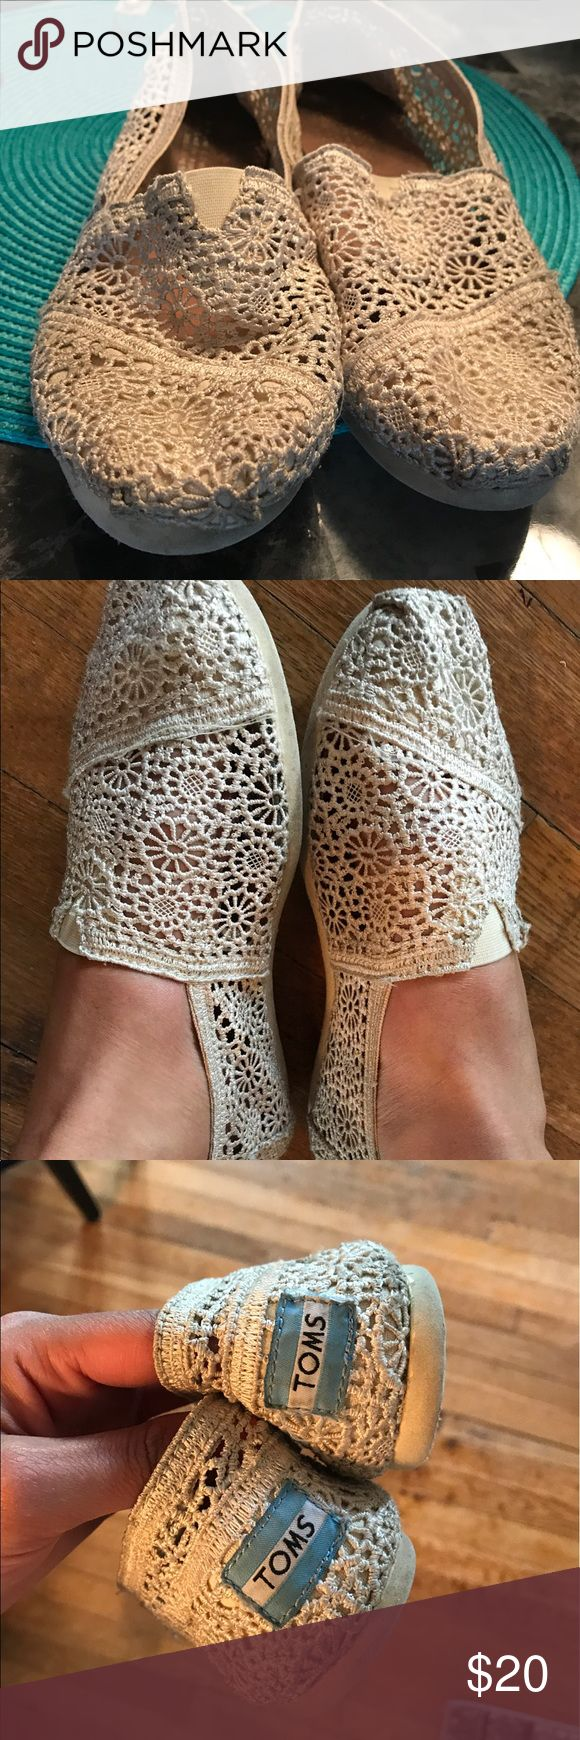 Tom's crochet beige shoes size 7.5 Tom's crochet beige shoes size 7.5 - worn a few times,  no tears to shoes in good condition, have tooo many toms these days, not that is a bad thing... very light and comfortable shoes ! Toms Shoes Flats & Loafers